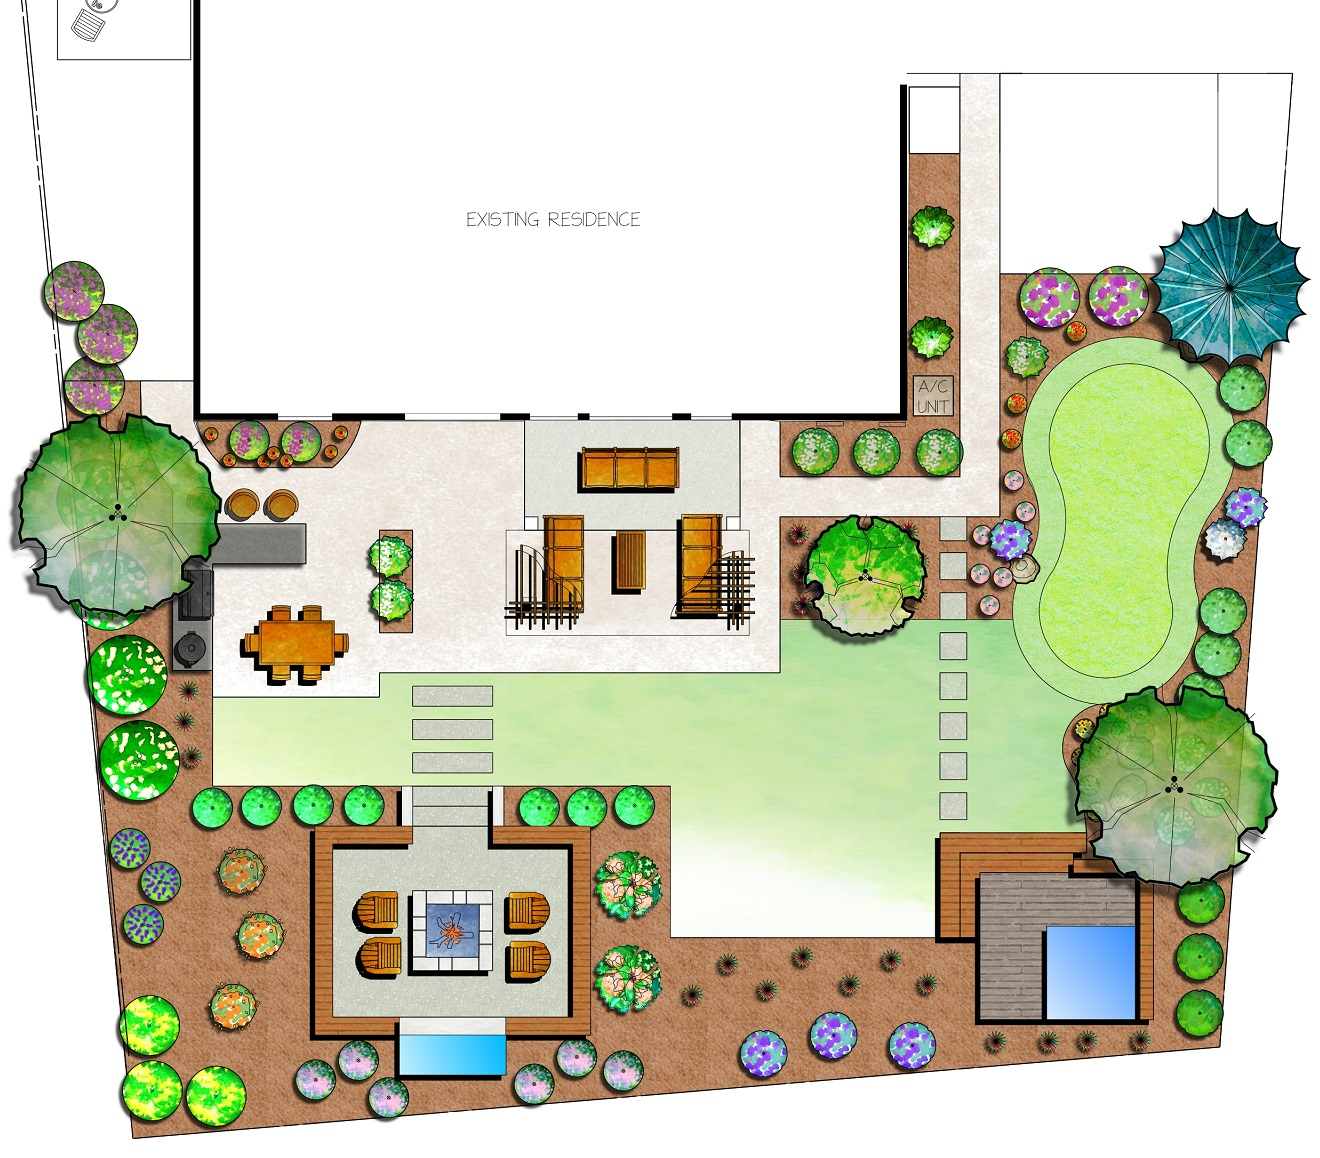 Backyard landscaping with patio and pool designs in Sparks, NV